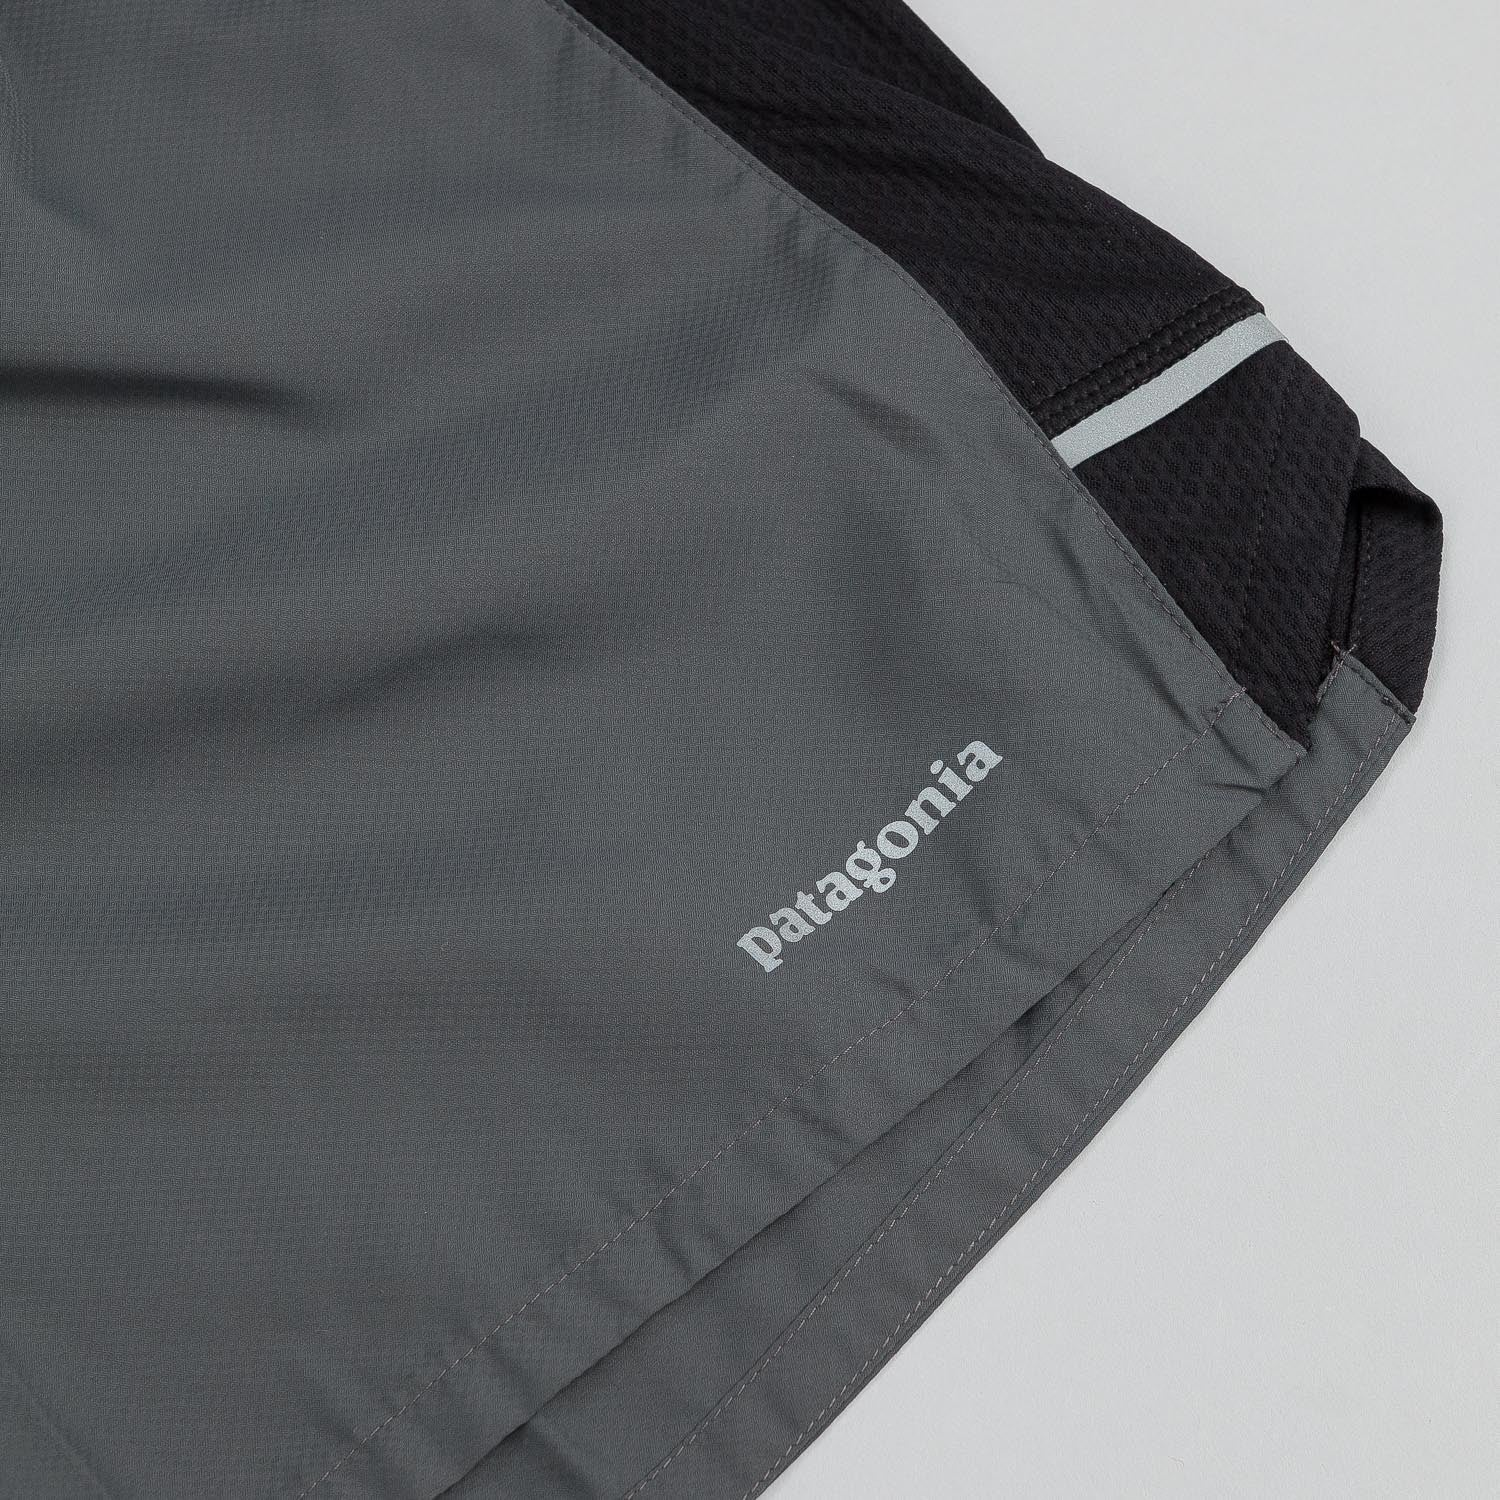 Patagonia Trail Chaser Shorts - Forge Grey